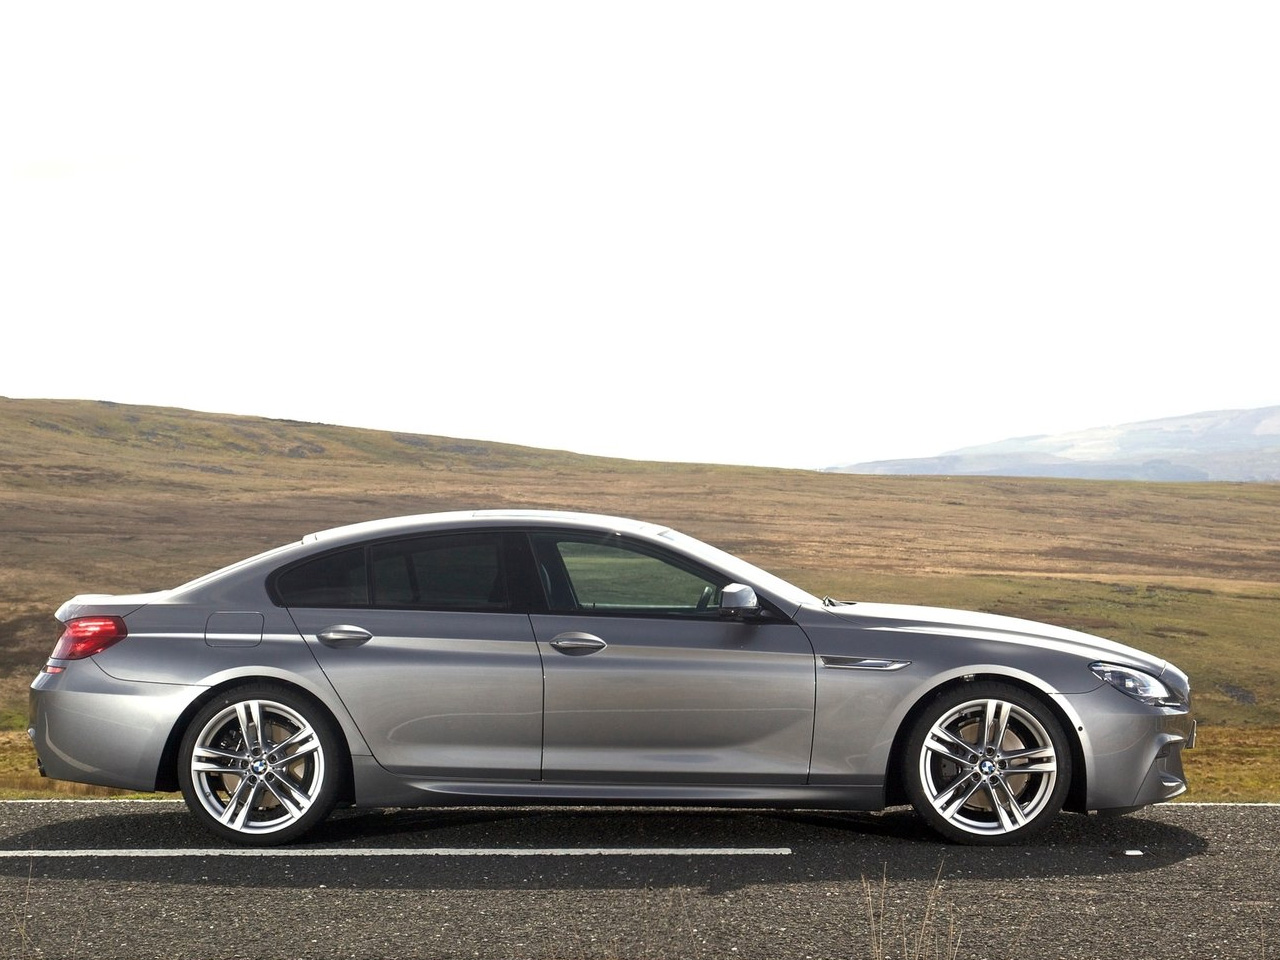 2013 Bmw 6 Series Gran Coupe #2